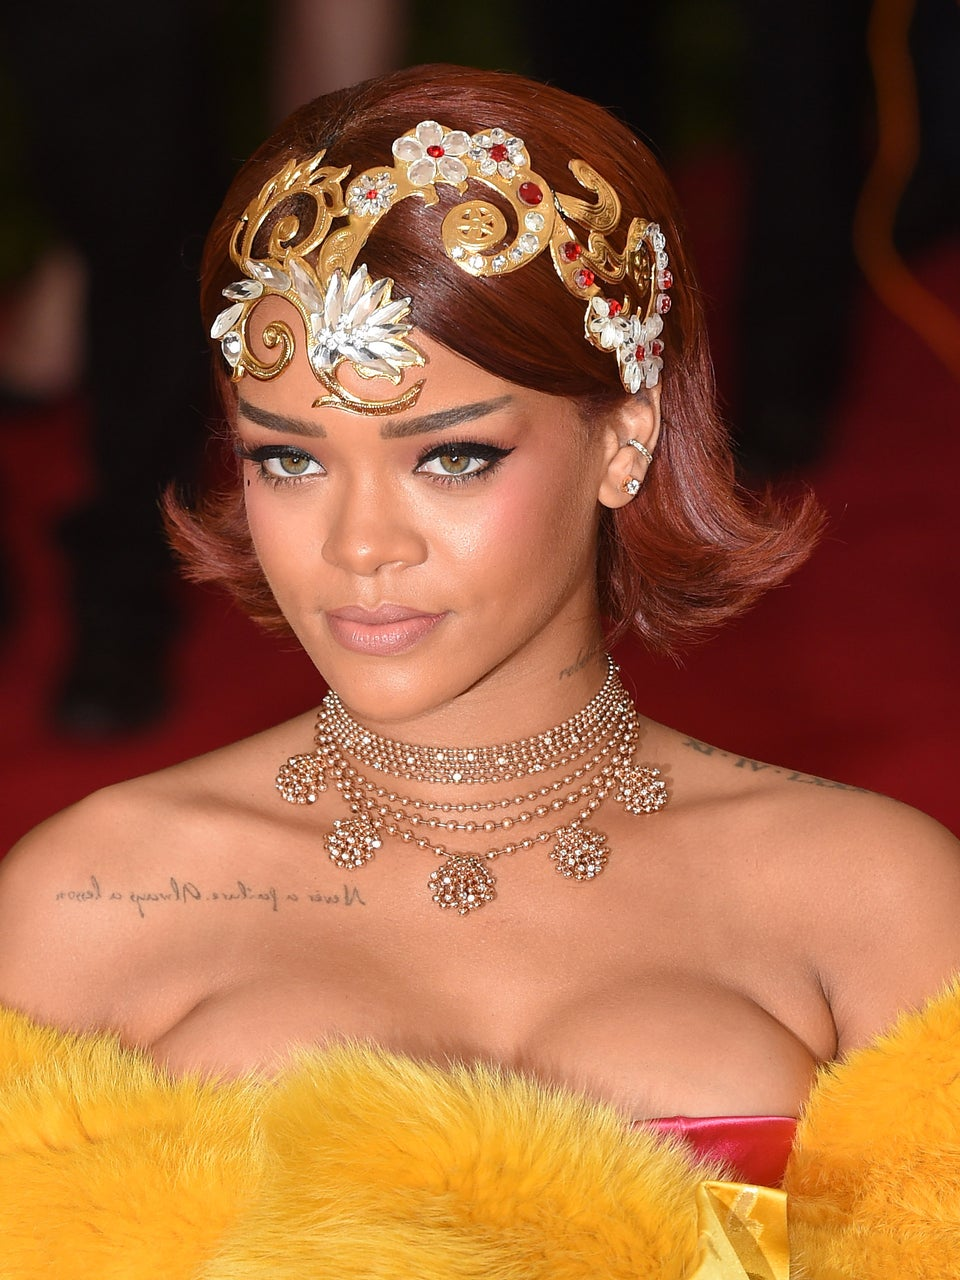 Rihanna's Clara Lionel Foundation's 'The Dollar Campaign' Gives Fans The Chance To Attend Her Annual Diamond Ball